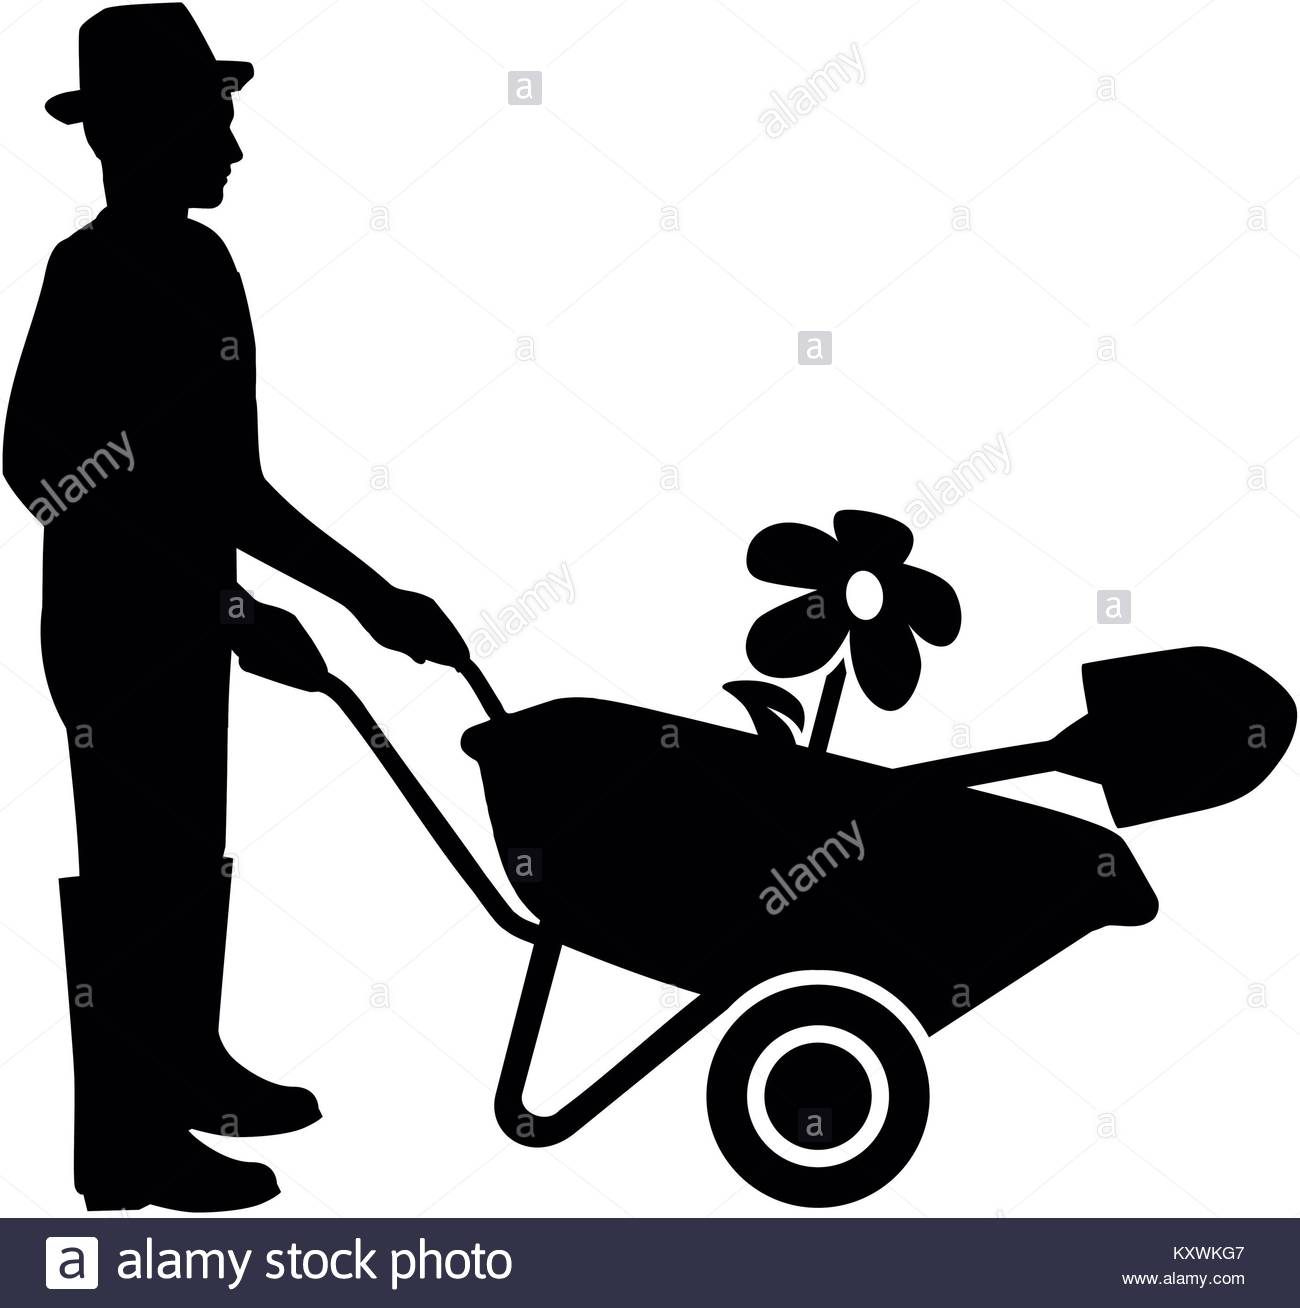 1300x1308 Silhouette Of A Gardener With Wheelbarrow In Black And White Stock